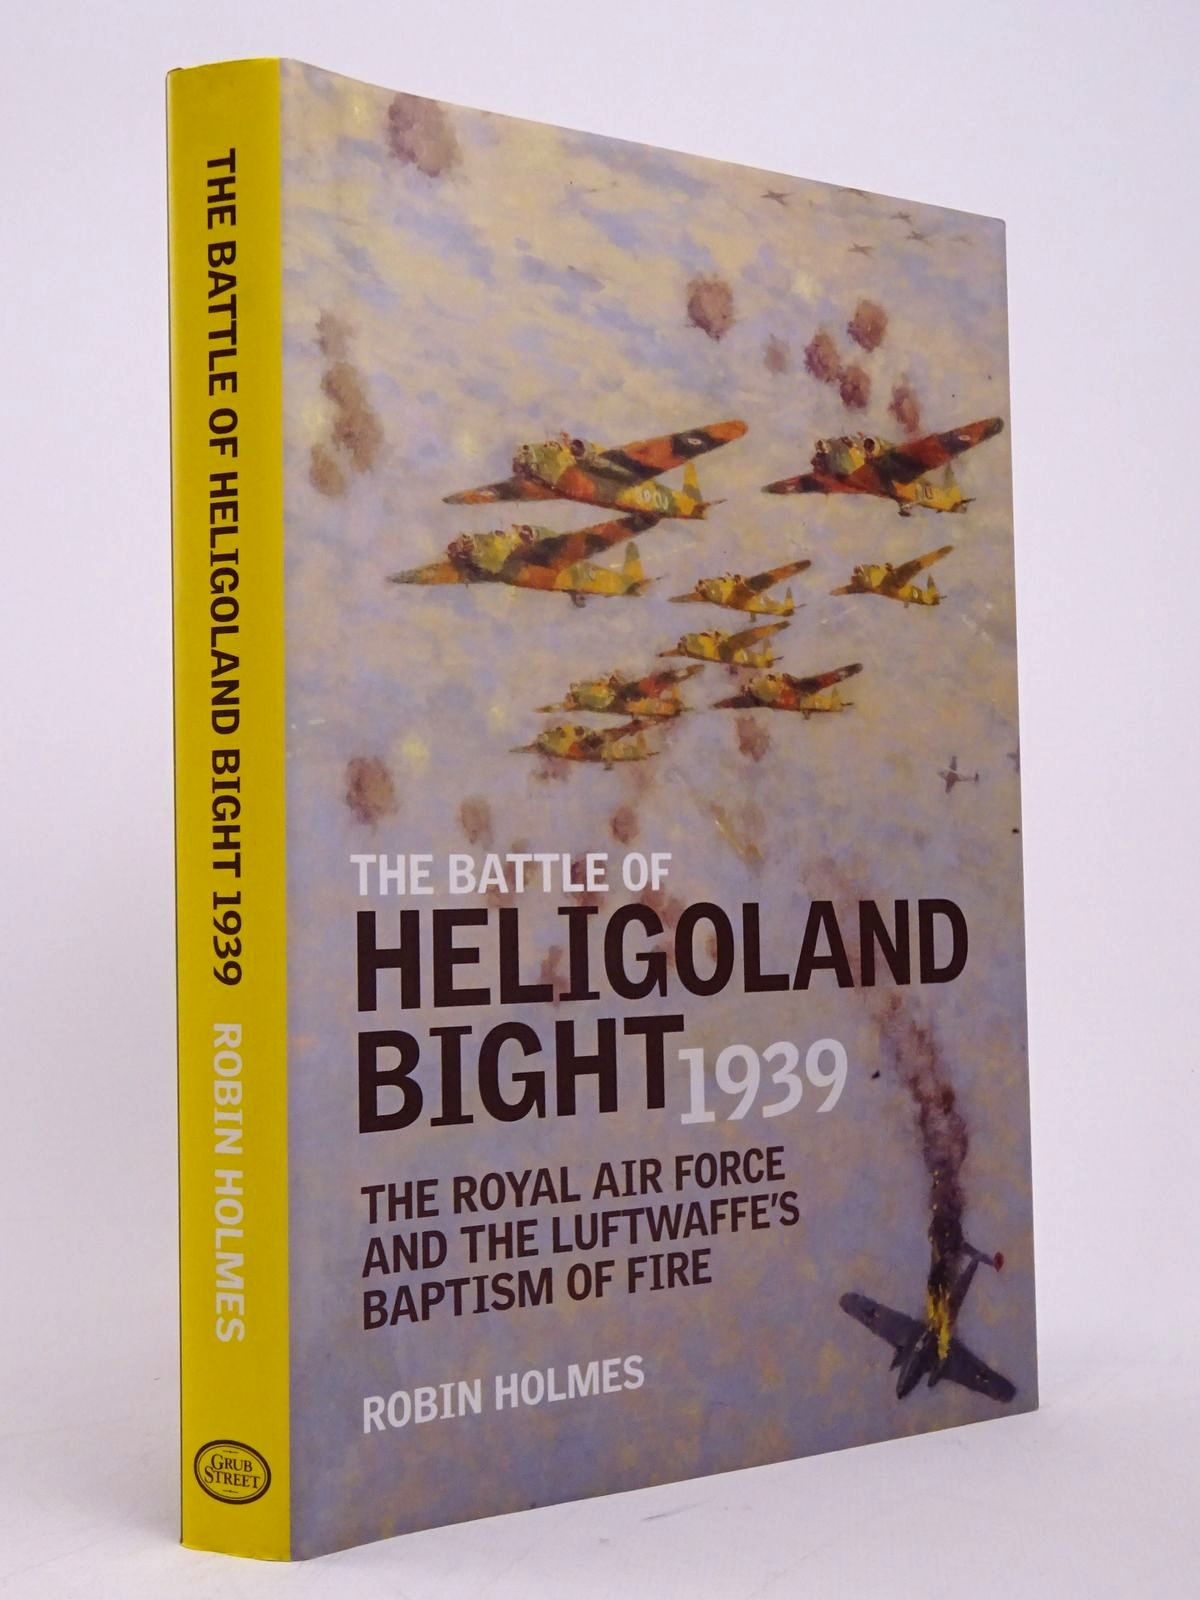 Photo of THE BATTLE OF HELIGOLAND BIGHT 1939: THE ROYAL AIR FORCE AND THE LUFTWAFFE'S BAPTISM OF FIRE- Stock Number: 1817739